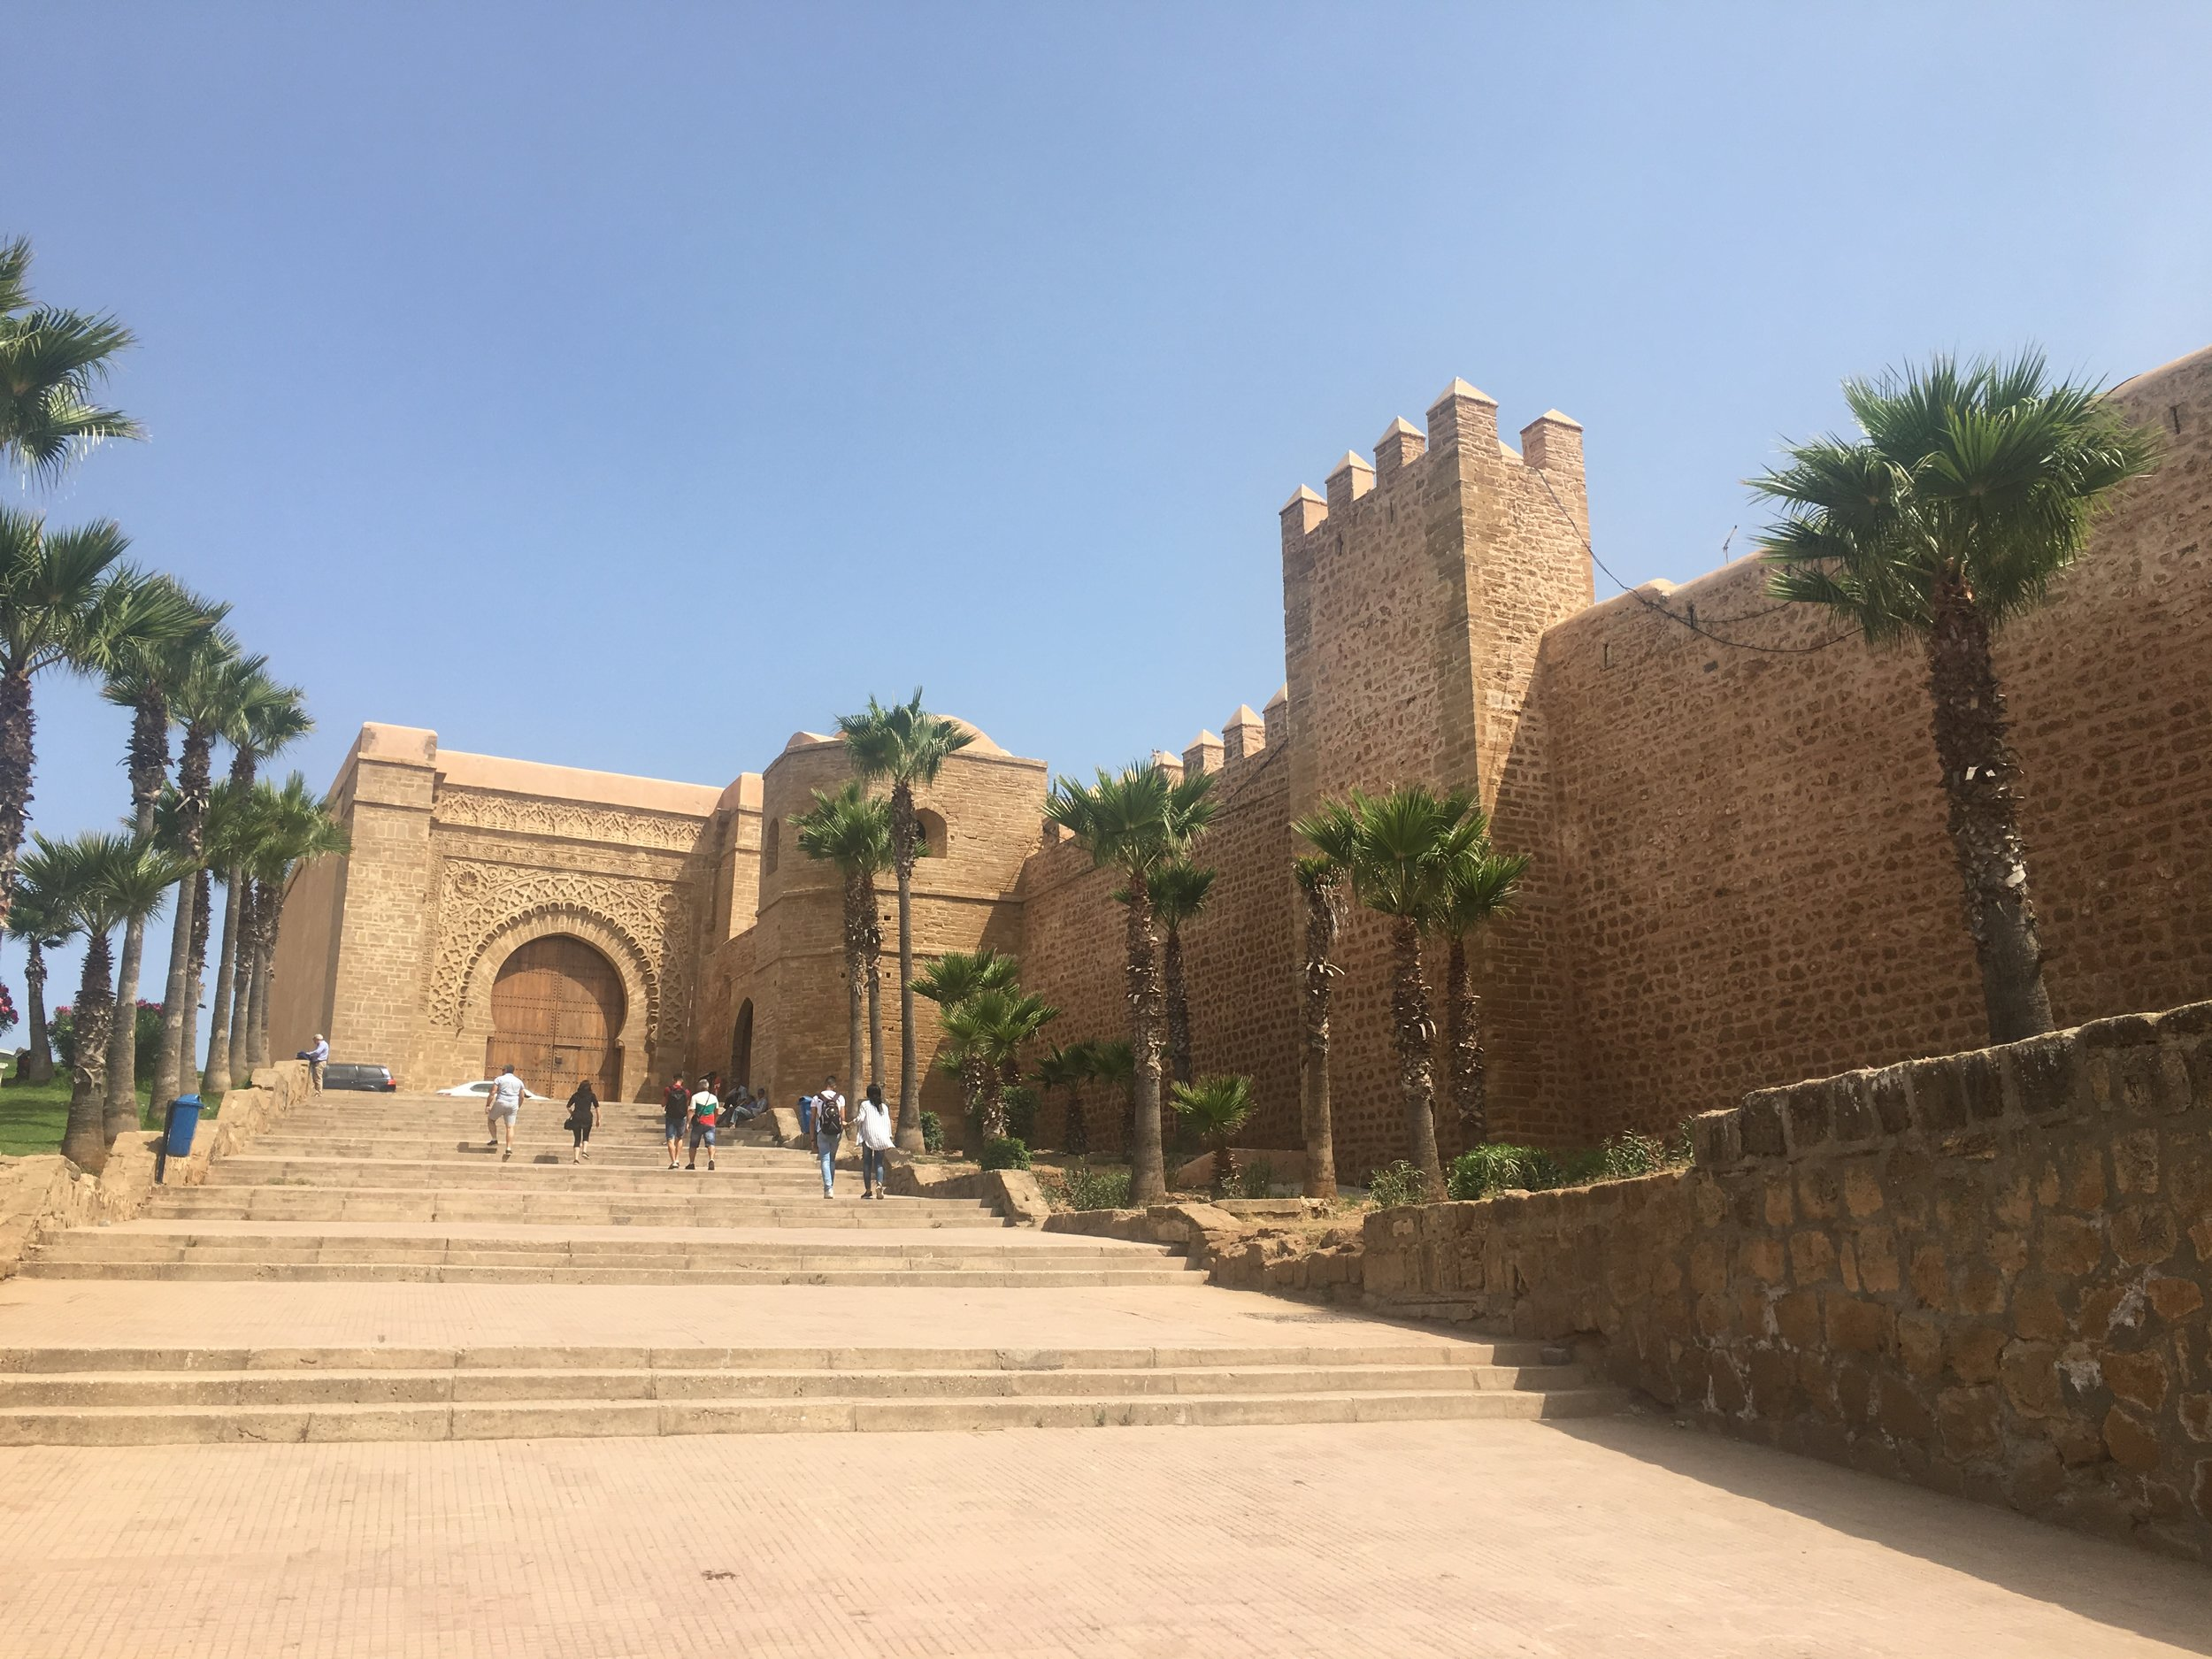 The gate and walls of the Medina in Rabat.